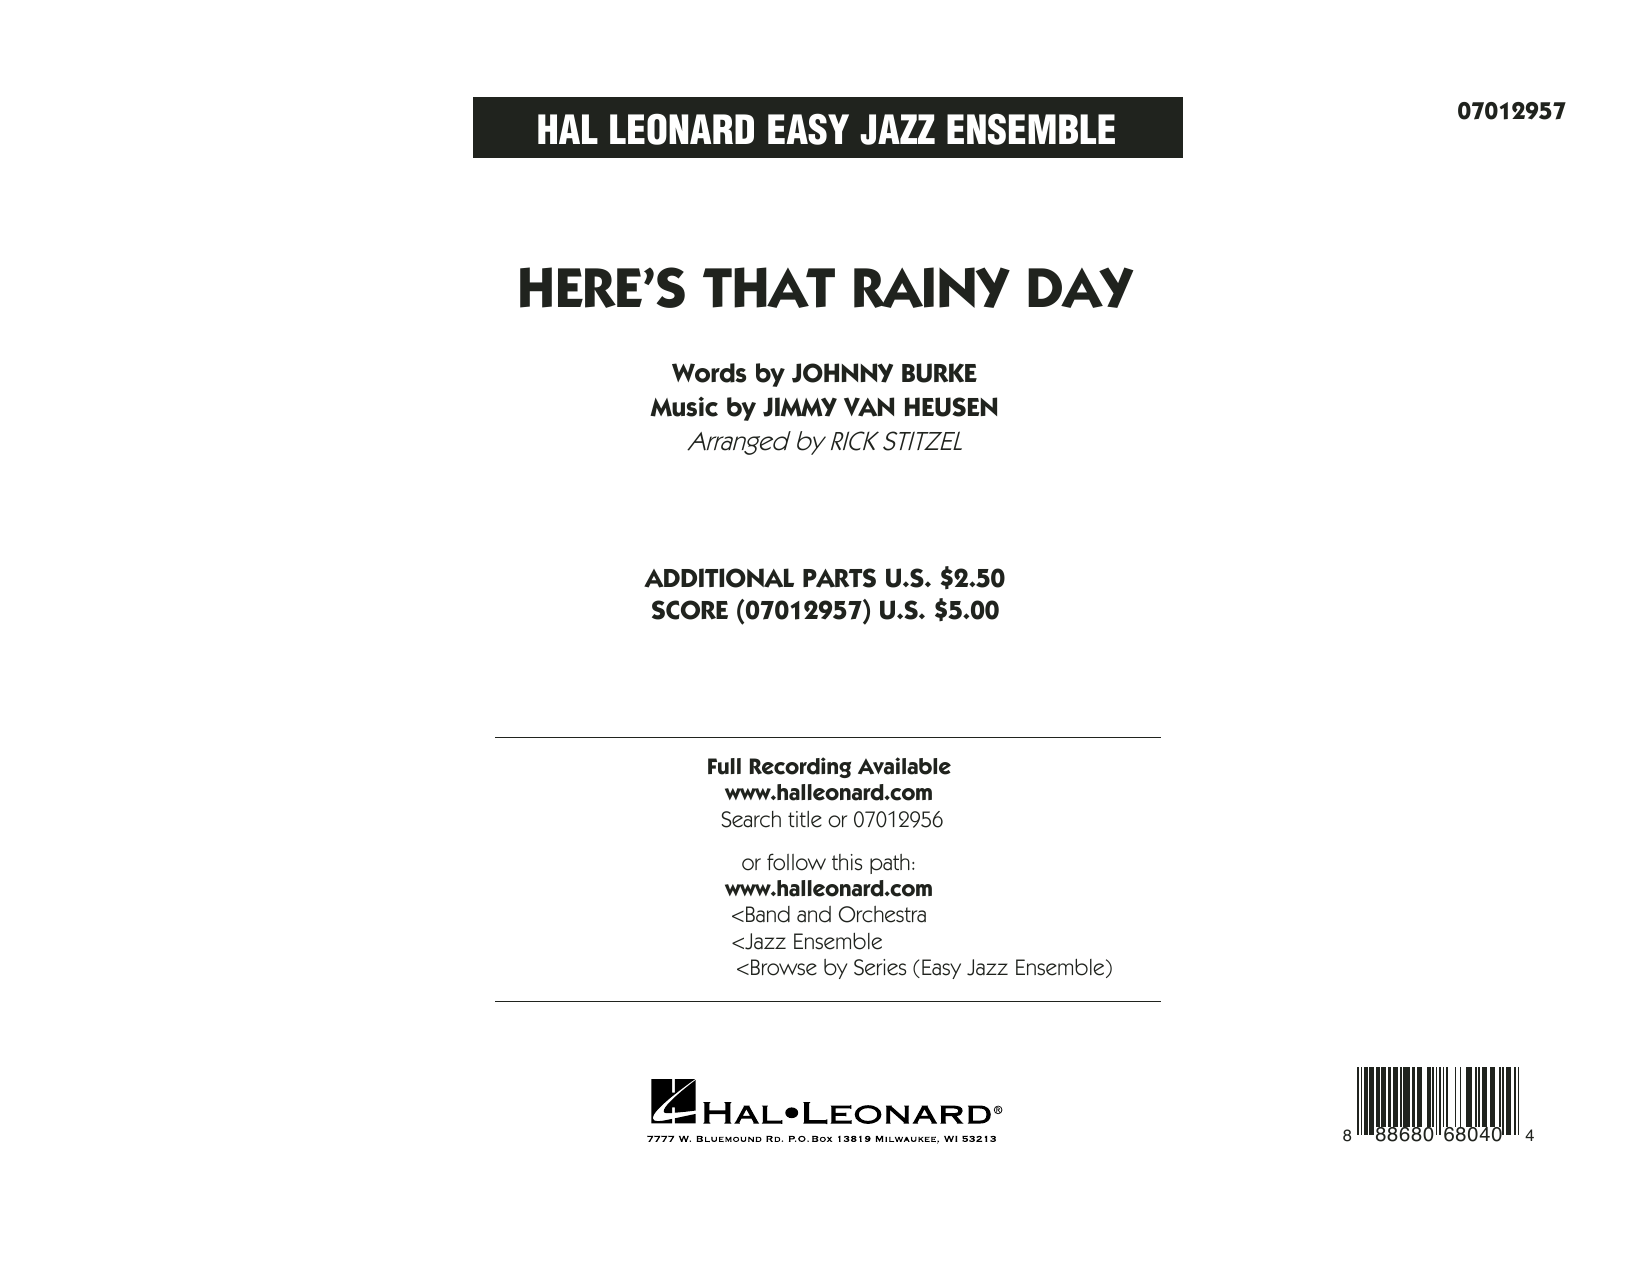 Rick Stitzel Here's That Rainy Day - Conductor Score (Full Score) sheet music notes and chords. Download Printable PDF.